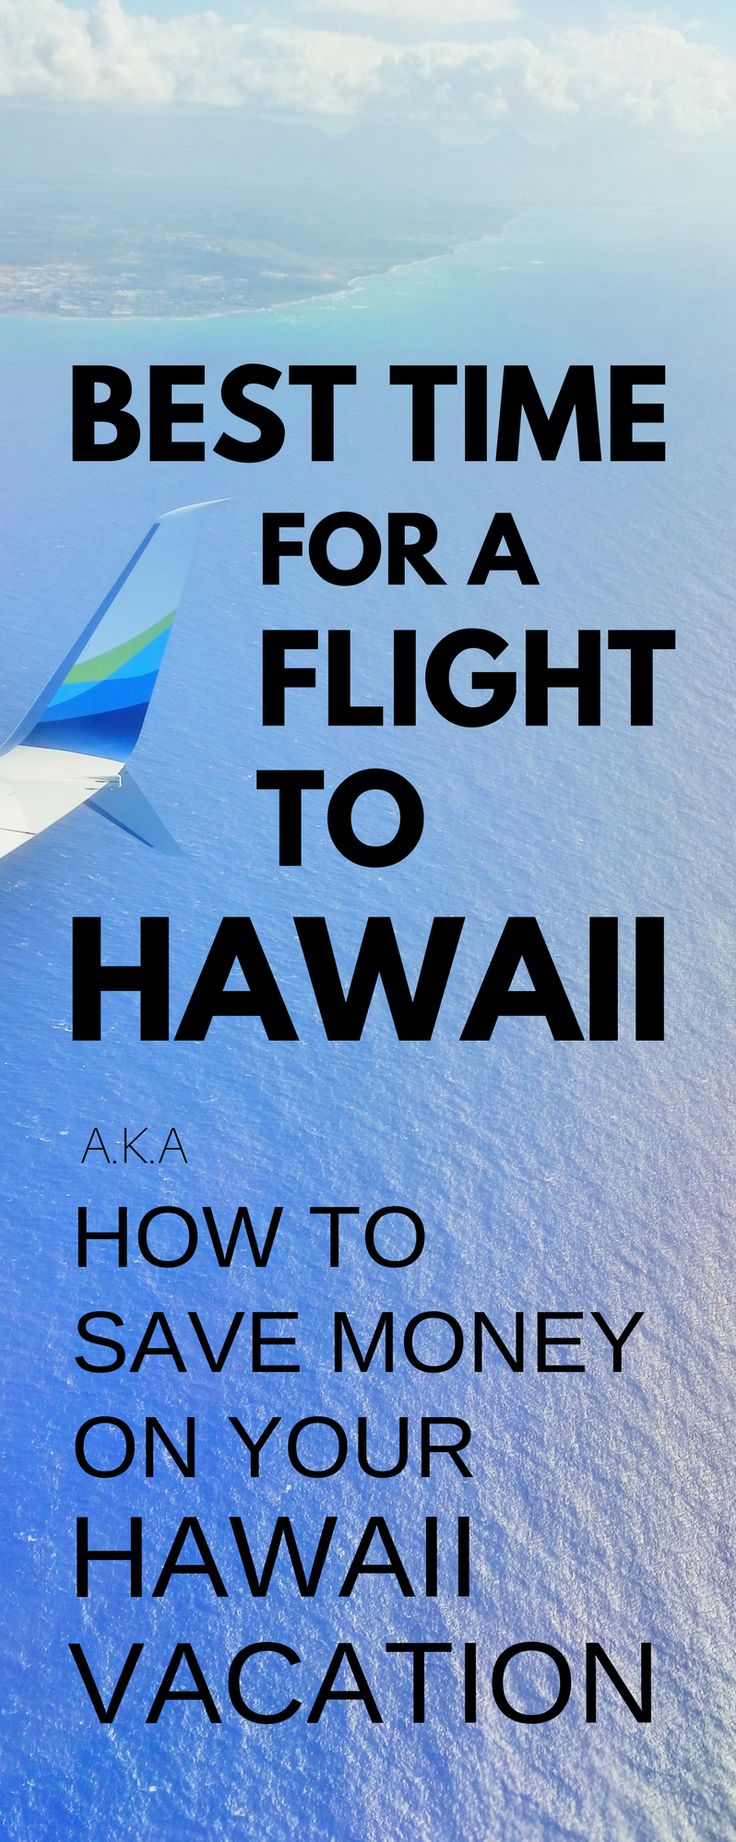 Hawaii vacation tips: First things to do: how to get, how to find cheap flights to Hawaii whether in US or it's international travel! Oahu, Maui, Kauai, Big Island hikes, snorkeling beaches await! Book best airline tickets with cheapest flights without thinking too much about when to buy ;) start the checklist of bucket list destinations, world trip adventures on a budget. Save money - travel tips, ideas! Destination wedding, honeymoon!! #hawaii #oahu #maui #kauai #bigisland #cheapflights